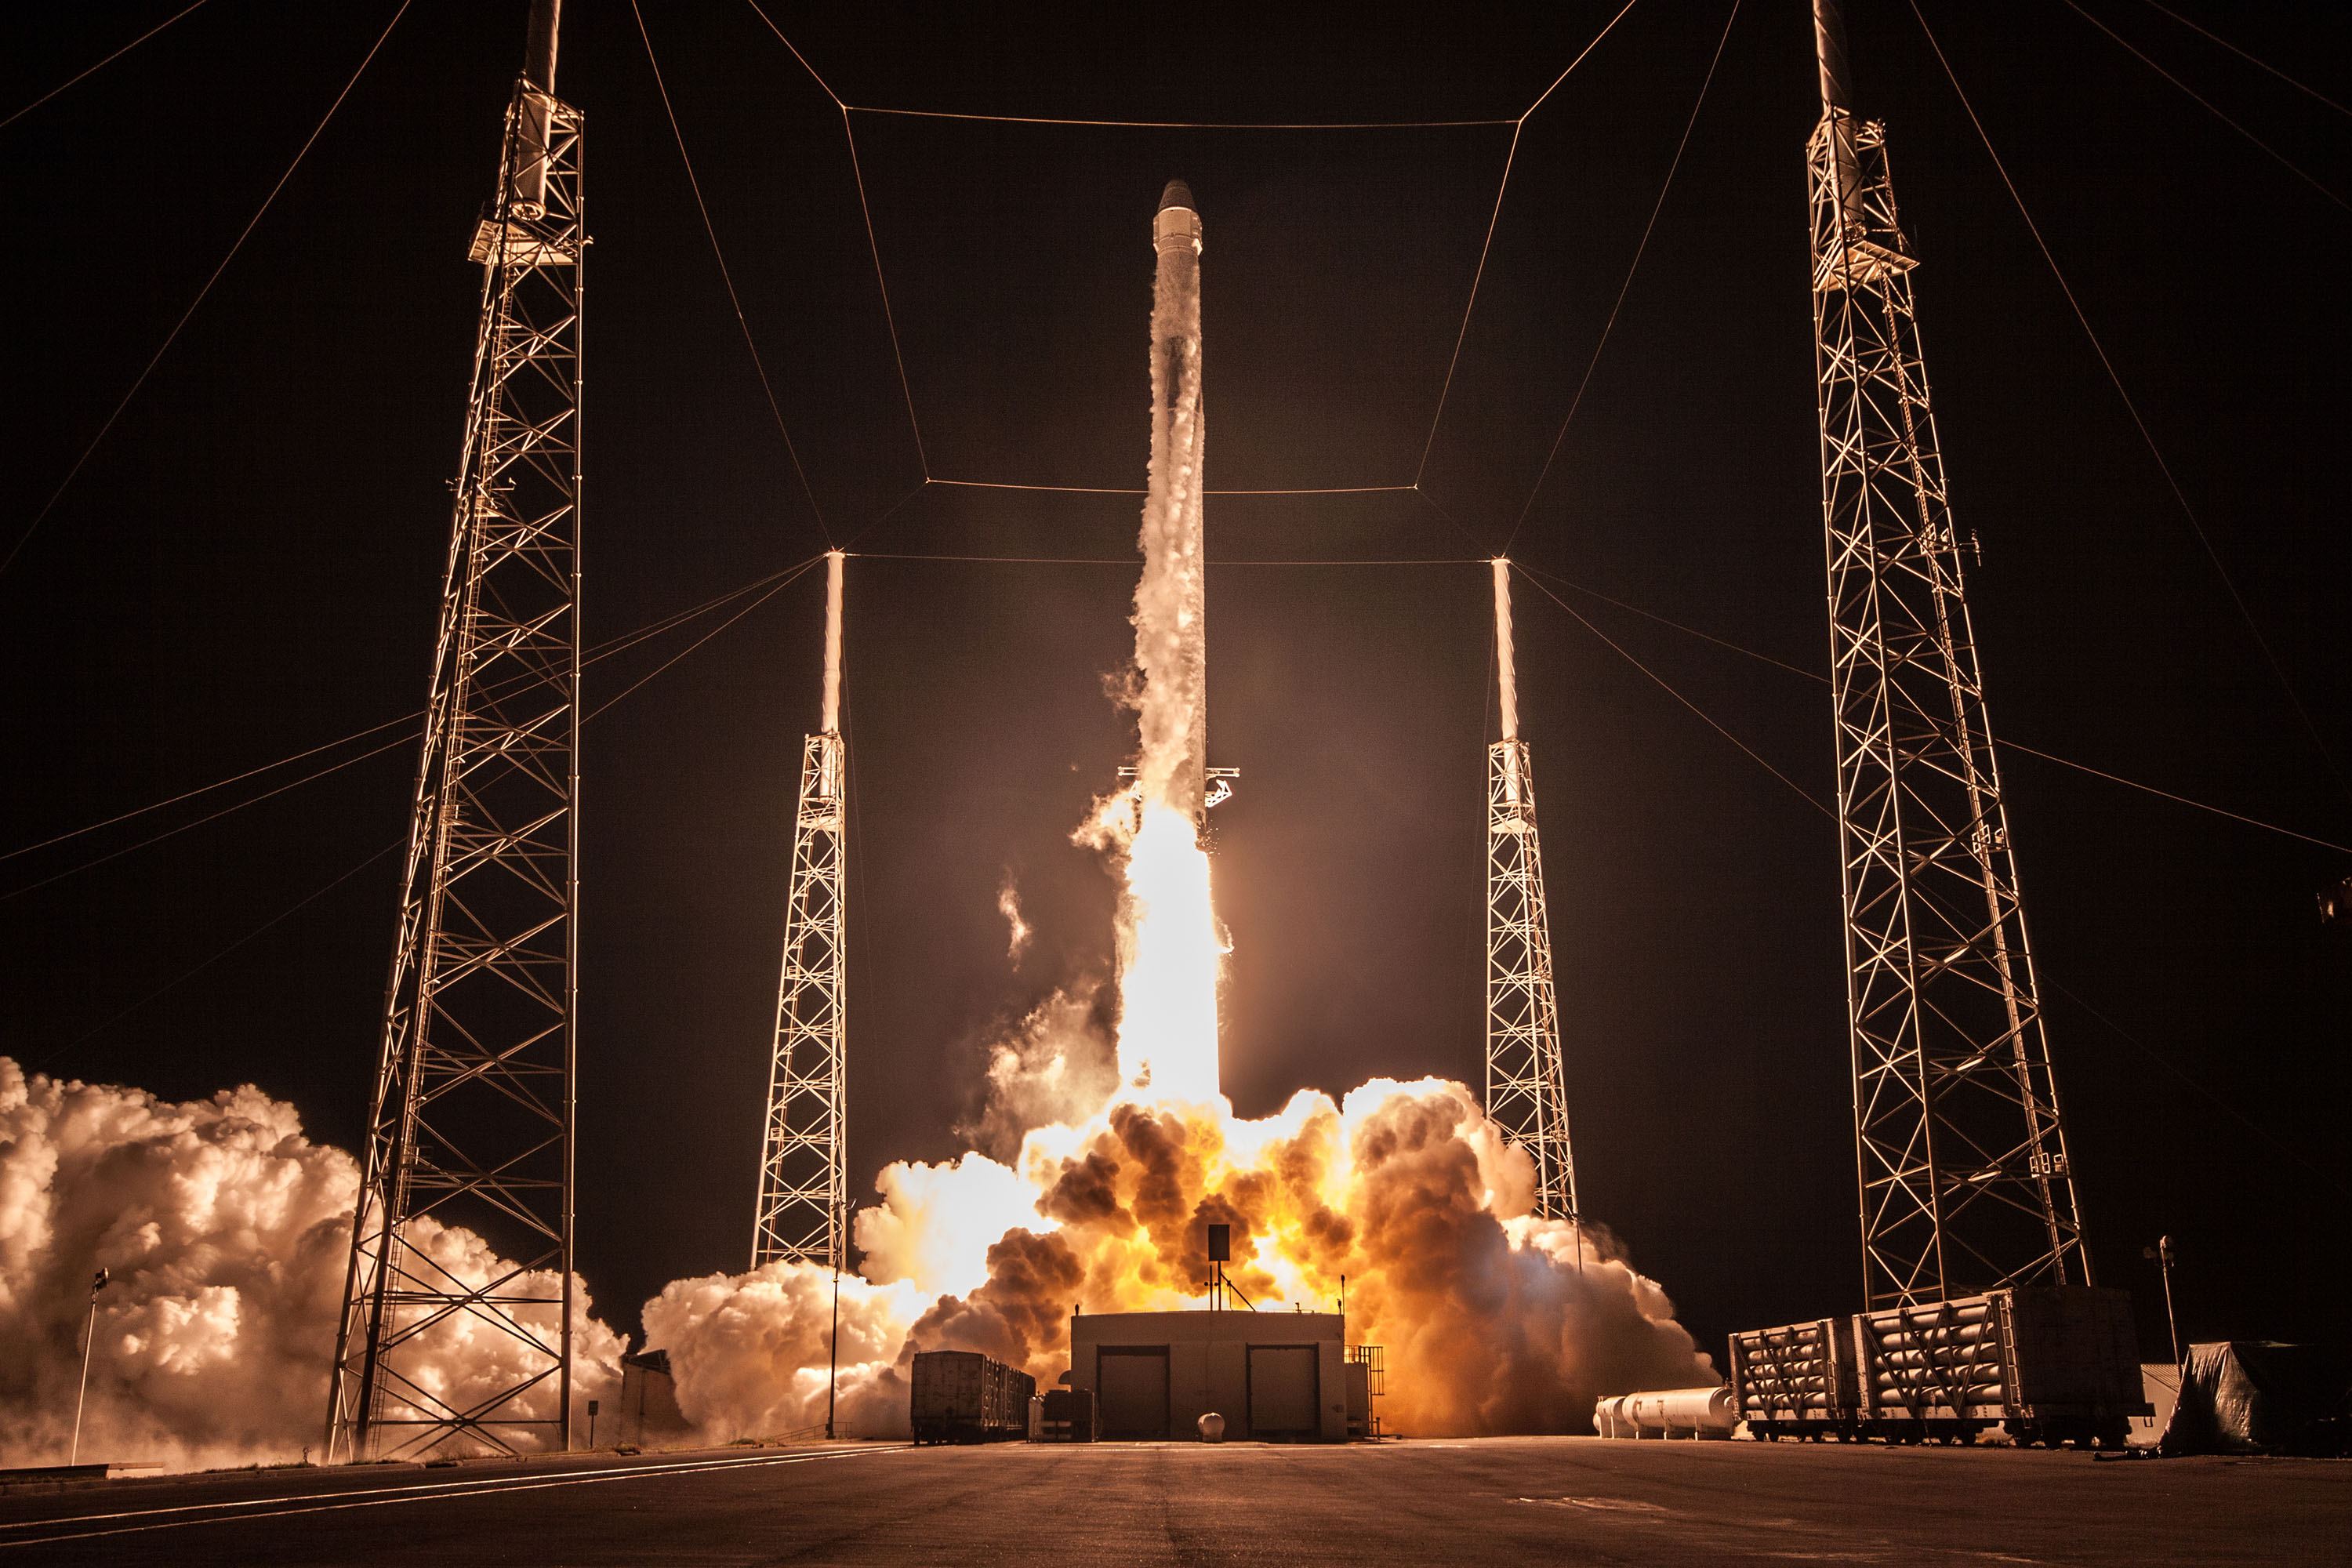 CRS-15 B1045 launch (SpaceX) 4